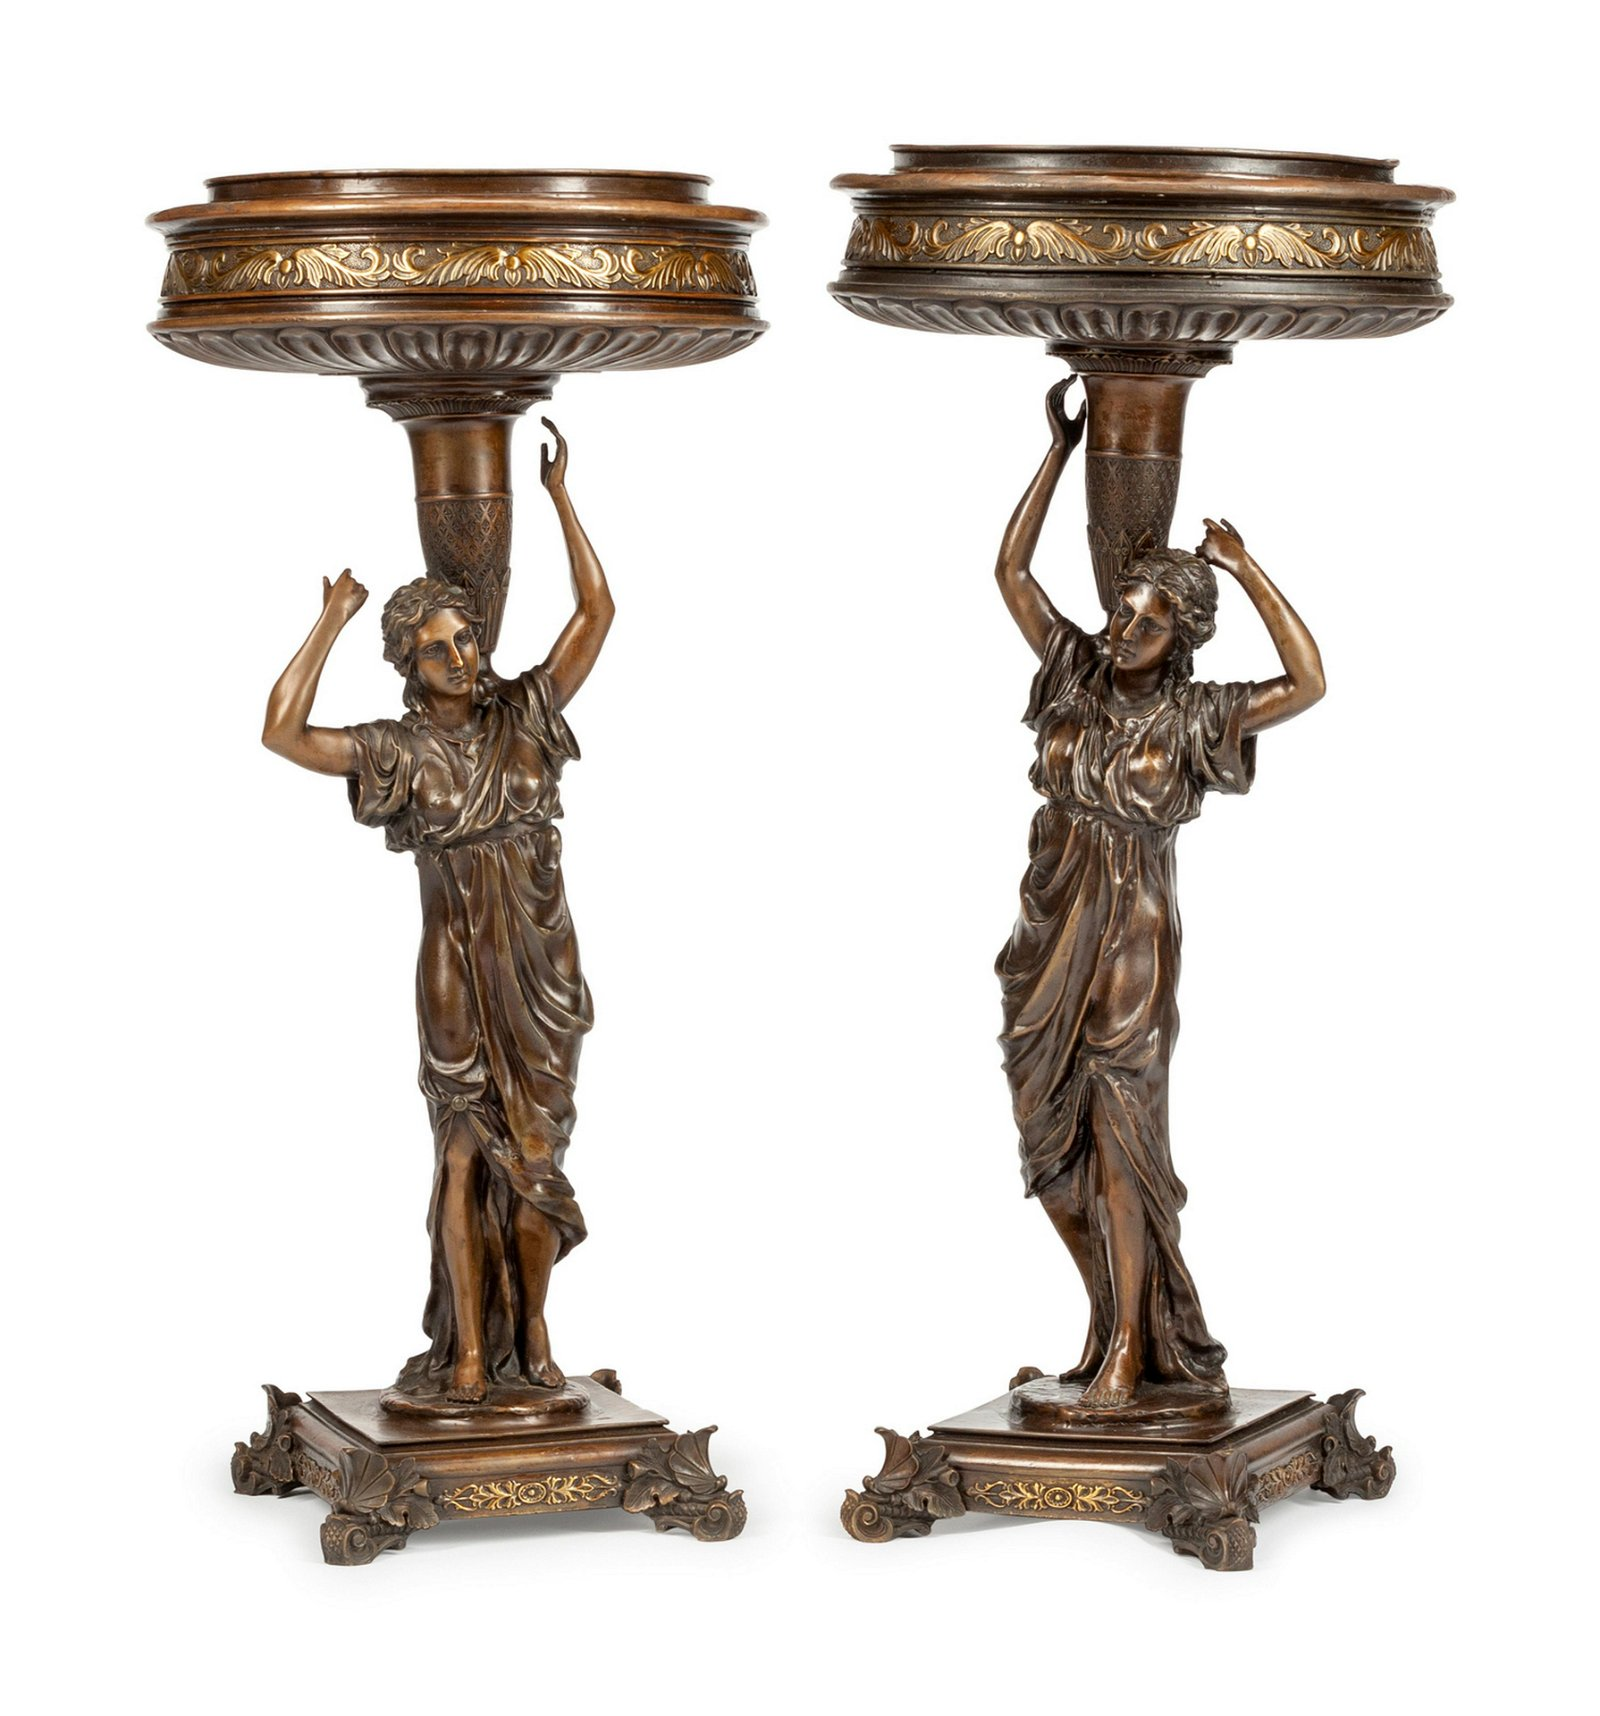 A Pair of Continental Patinated Bronze Figural